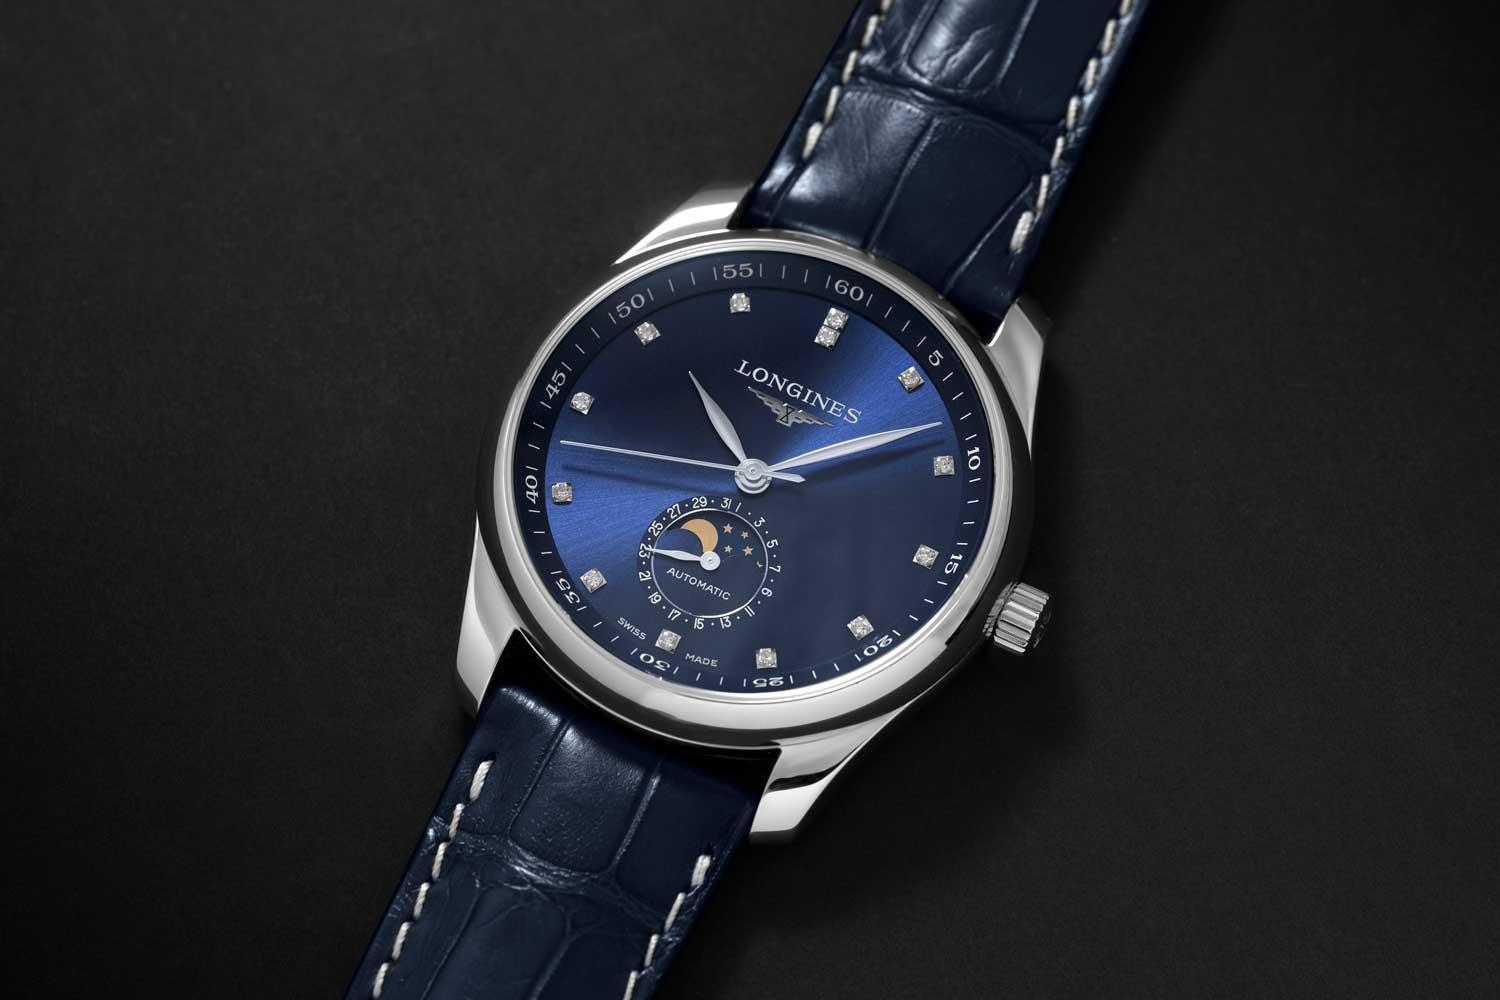 Longines Master Moon Phase in sunray blue version with applied indexes (Image © Revolution)